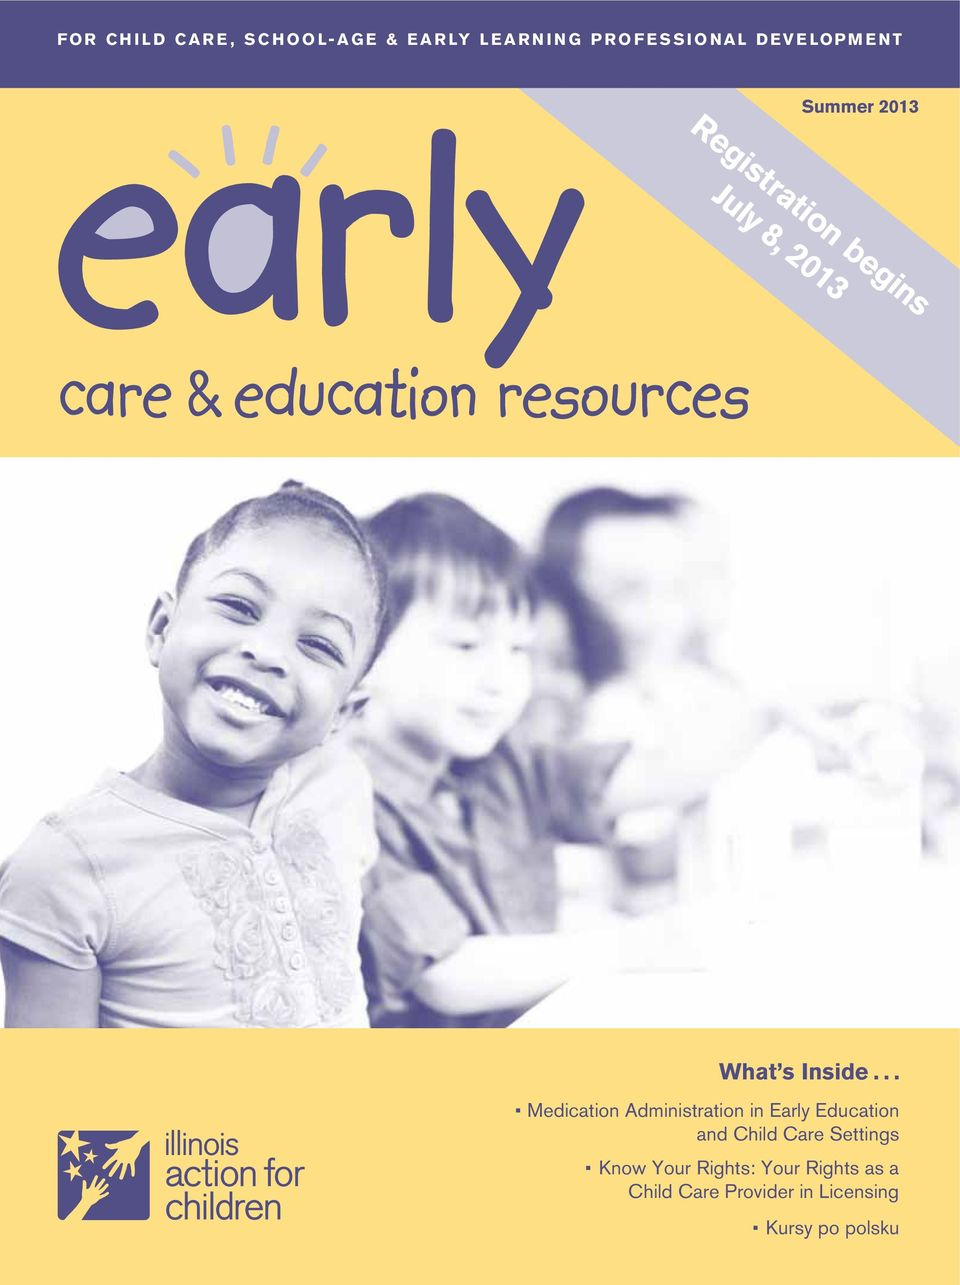 .. Medication Administration in Early Education and Child Care Settings